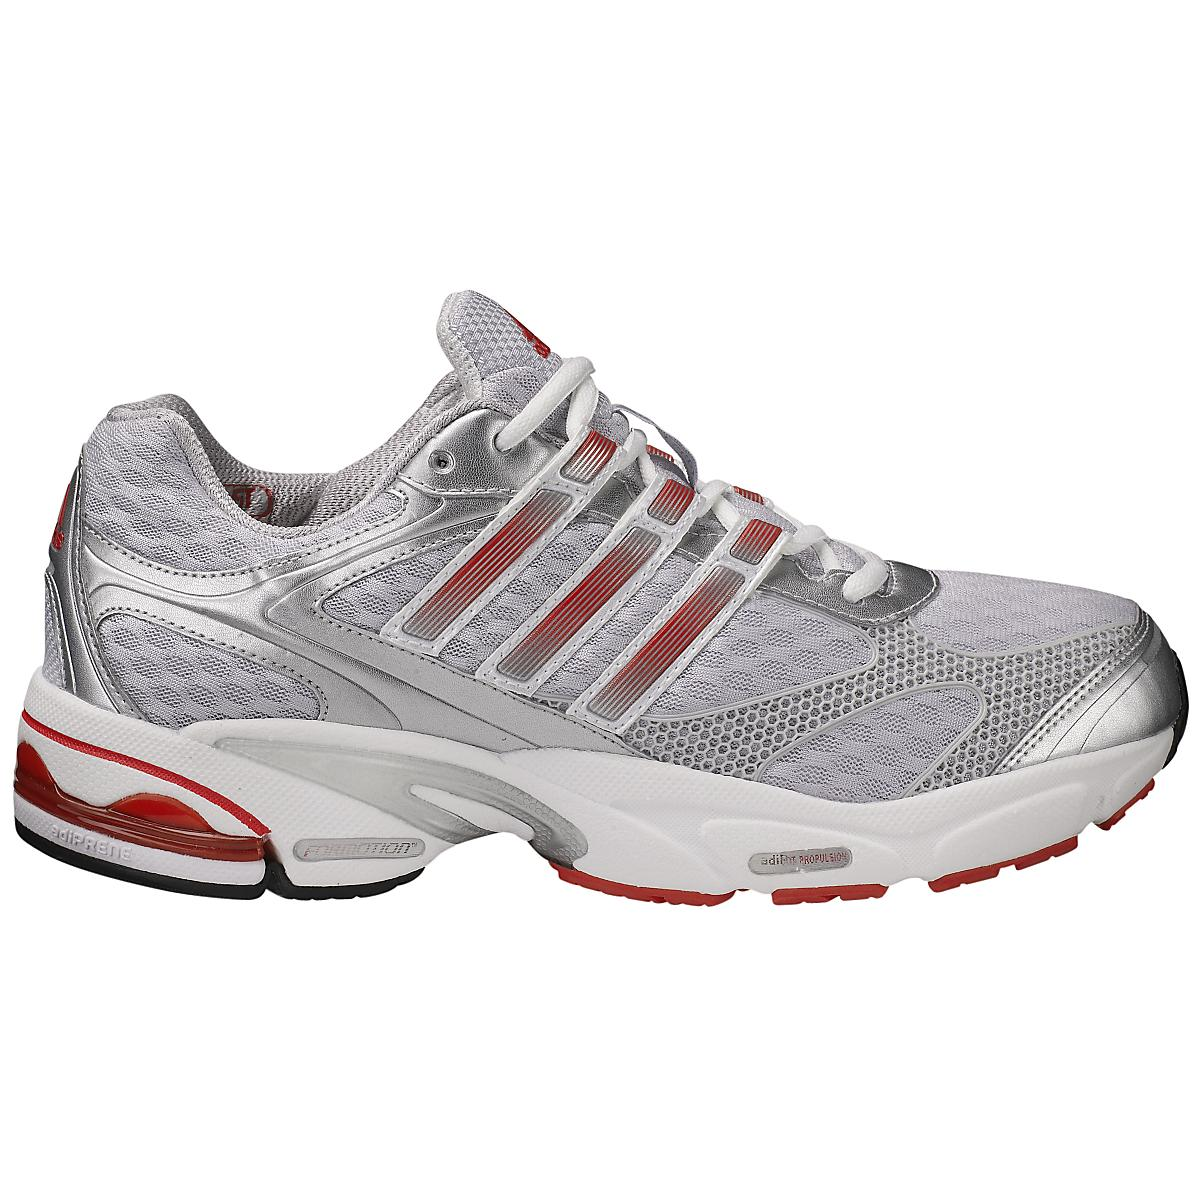 af82e903a0e Mens adidas Supernova Control 9 Running Shoe at Road Runner Sports